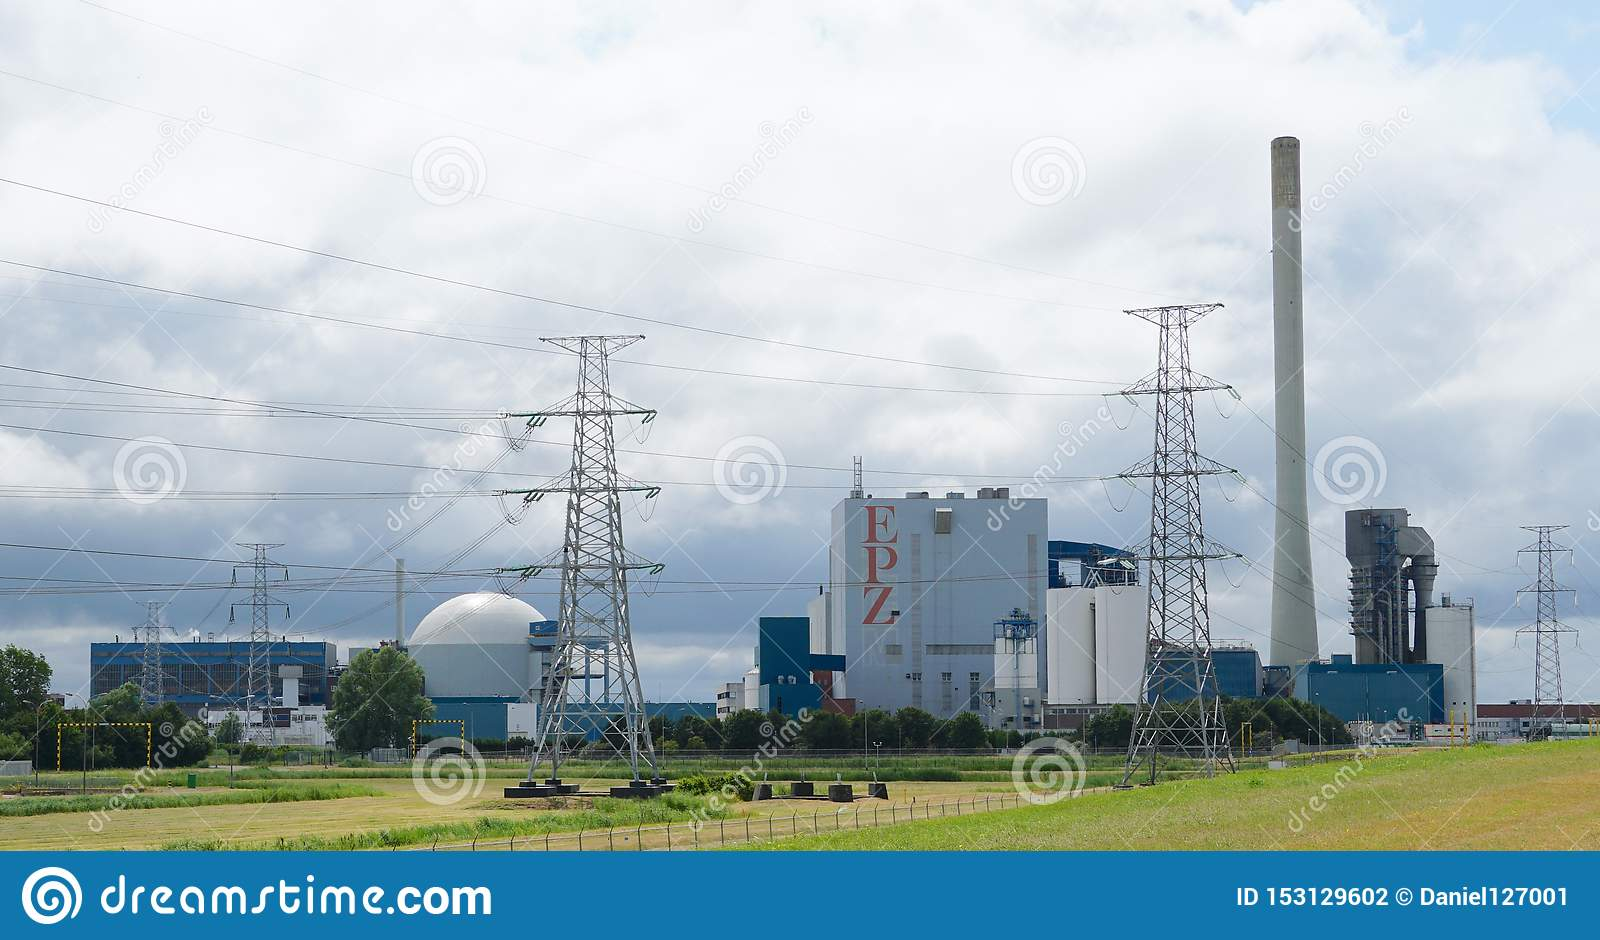 nuclear power plant near borssele in the netherlands editorial photography  - image of reactor, turbine: 153129602  dreamstime.com